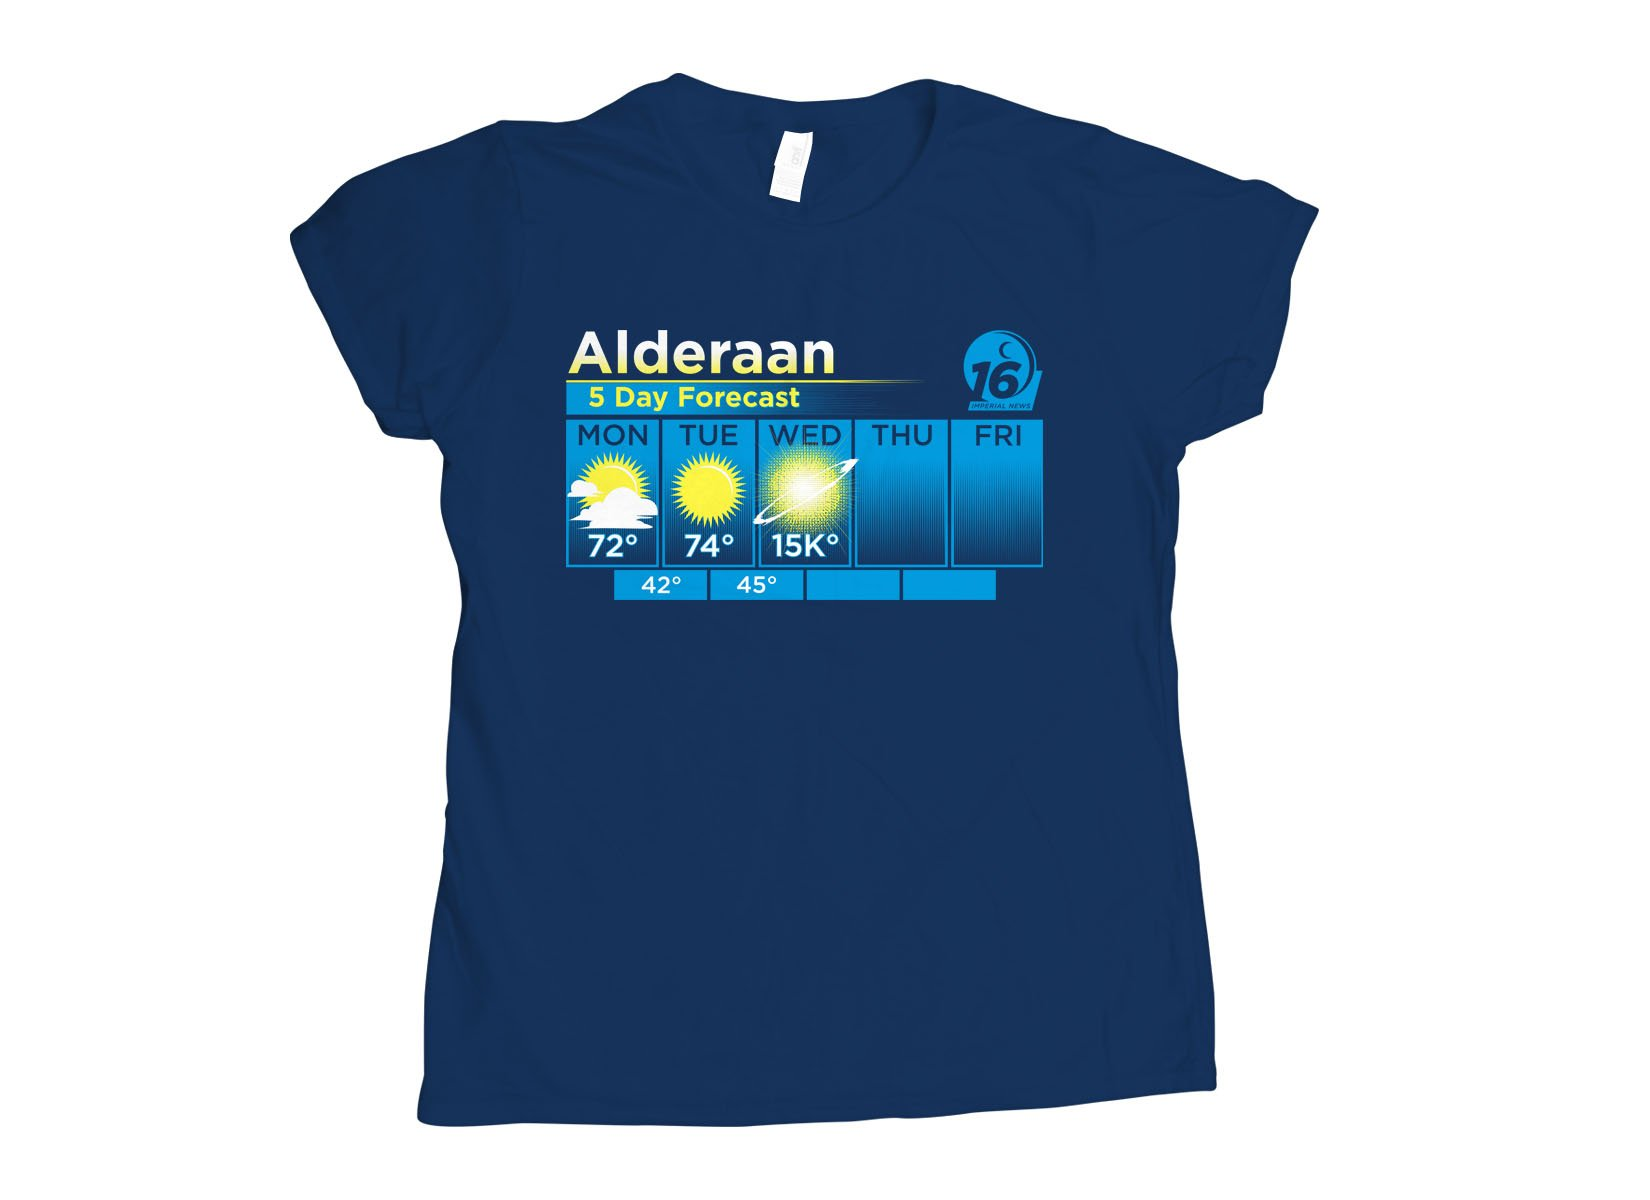 Alderaan 5 Day Forecast on Womens T-Shirt